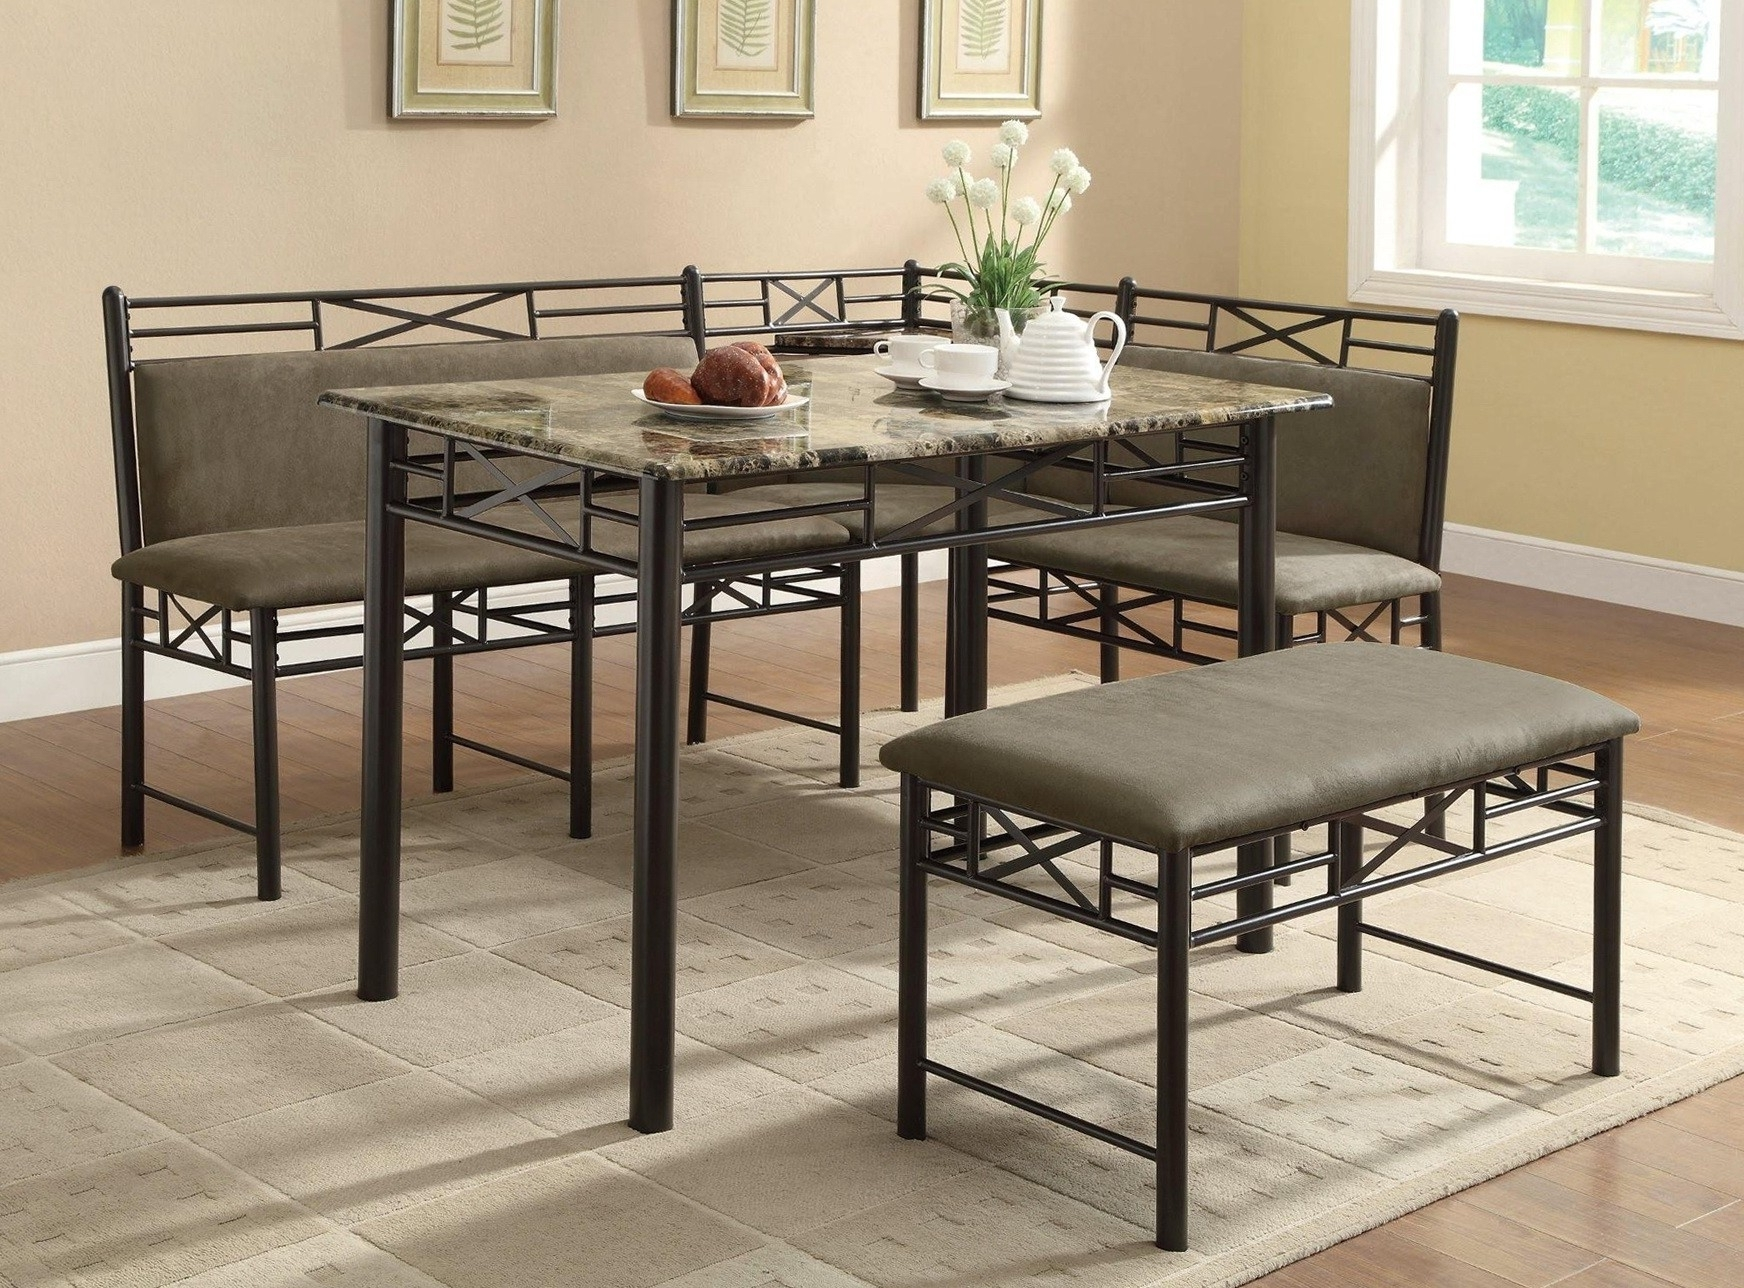 Most Current Furniture. Sturdy Dining Table With Bench: Black Metal Finish Dining With Regard To Dark Wood Square Dining Tables (Gallery 24 of 25)